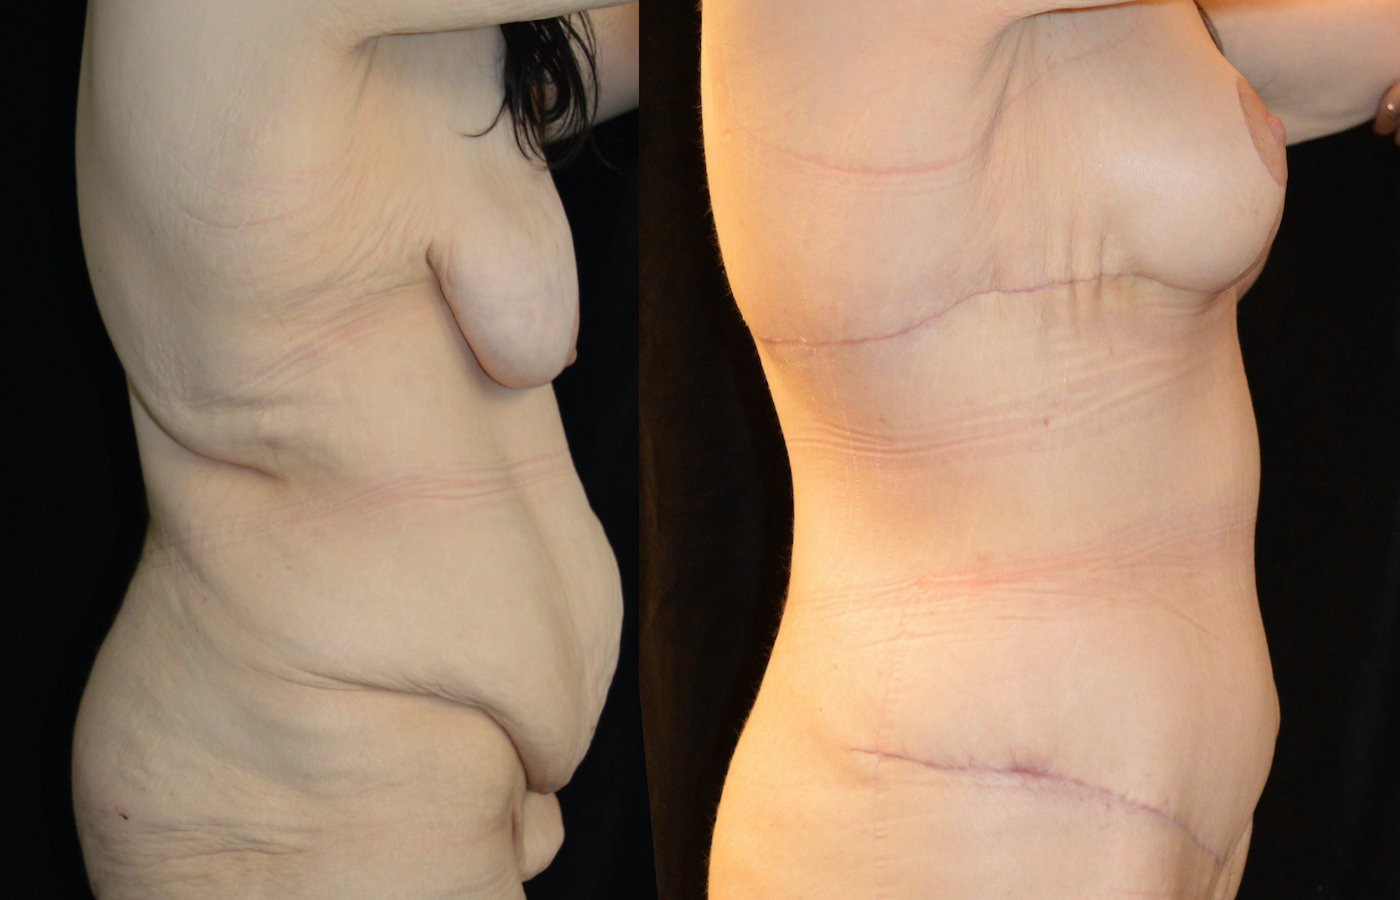 34-year-old 3 months after extended abdominoplasty and 1 month after breast lift, breast auto-augmentation, right side view